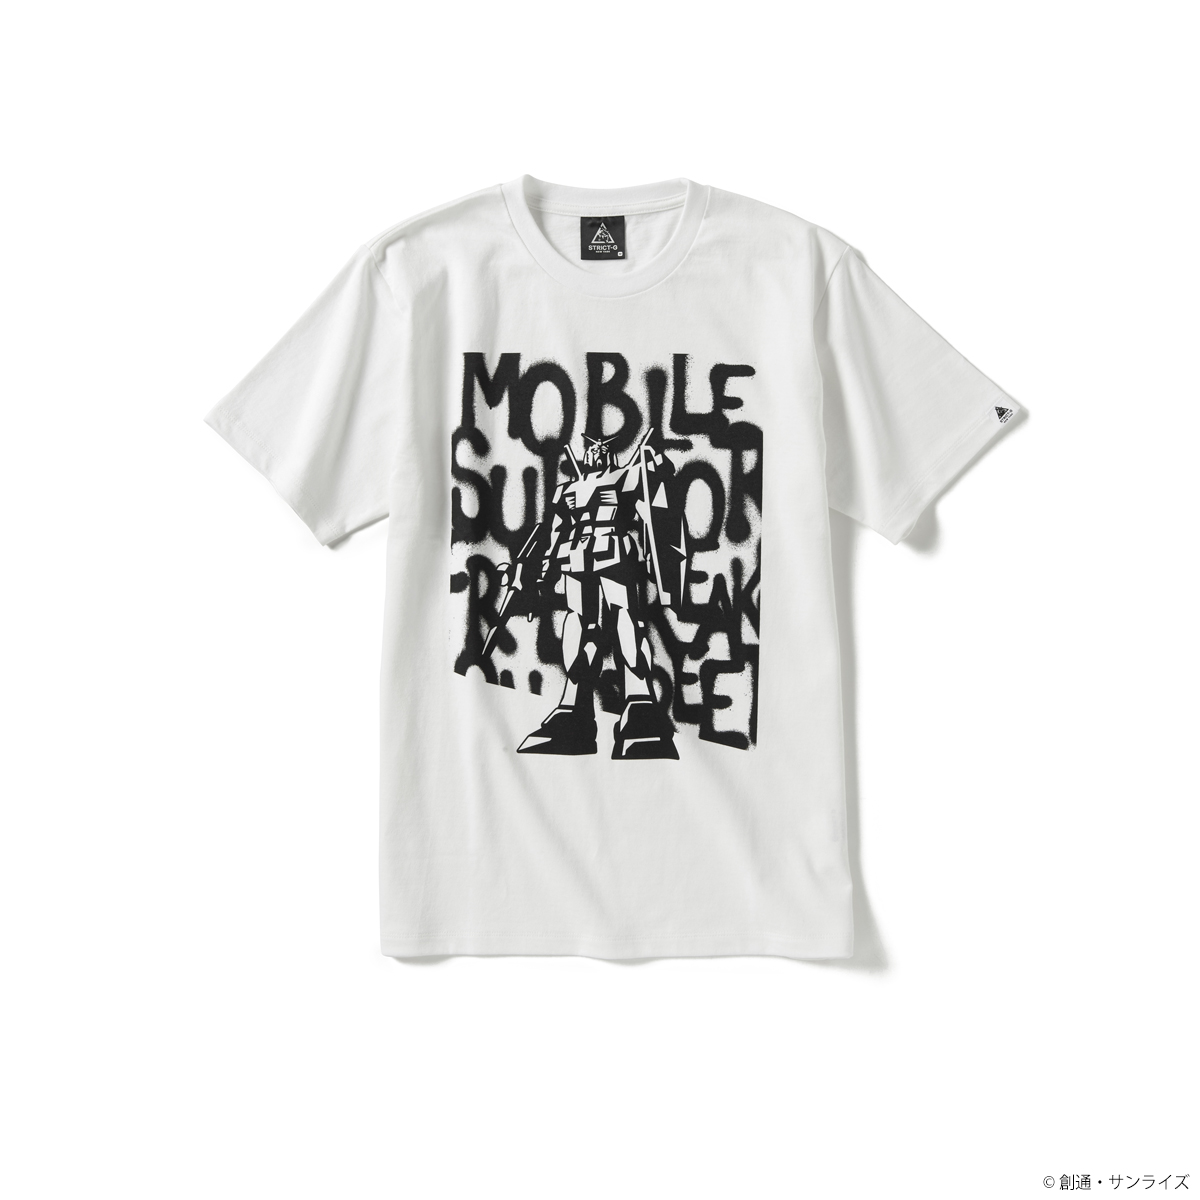 STRICT-G NEW YARK Tシャツ HAND STYLE RISE UP柄